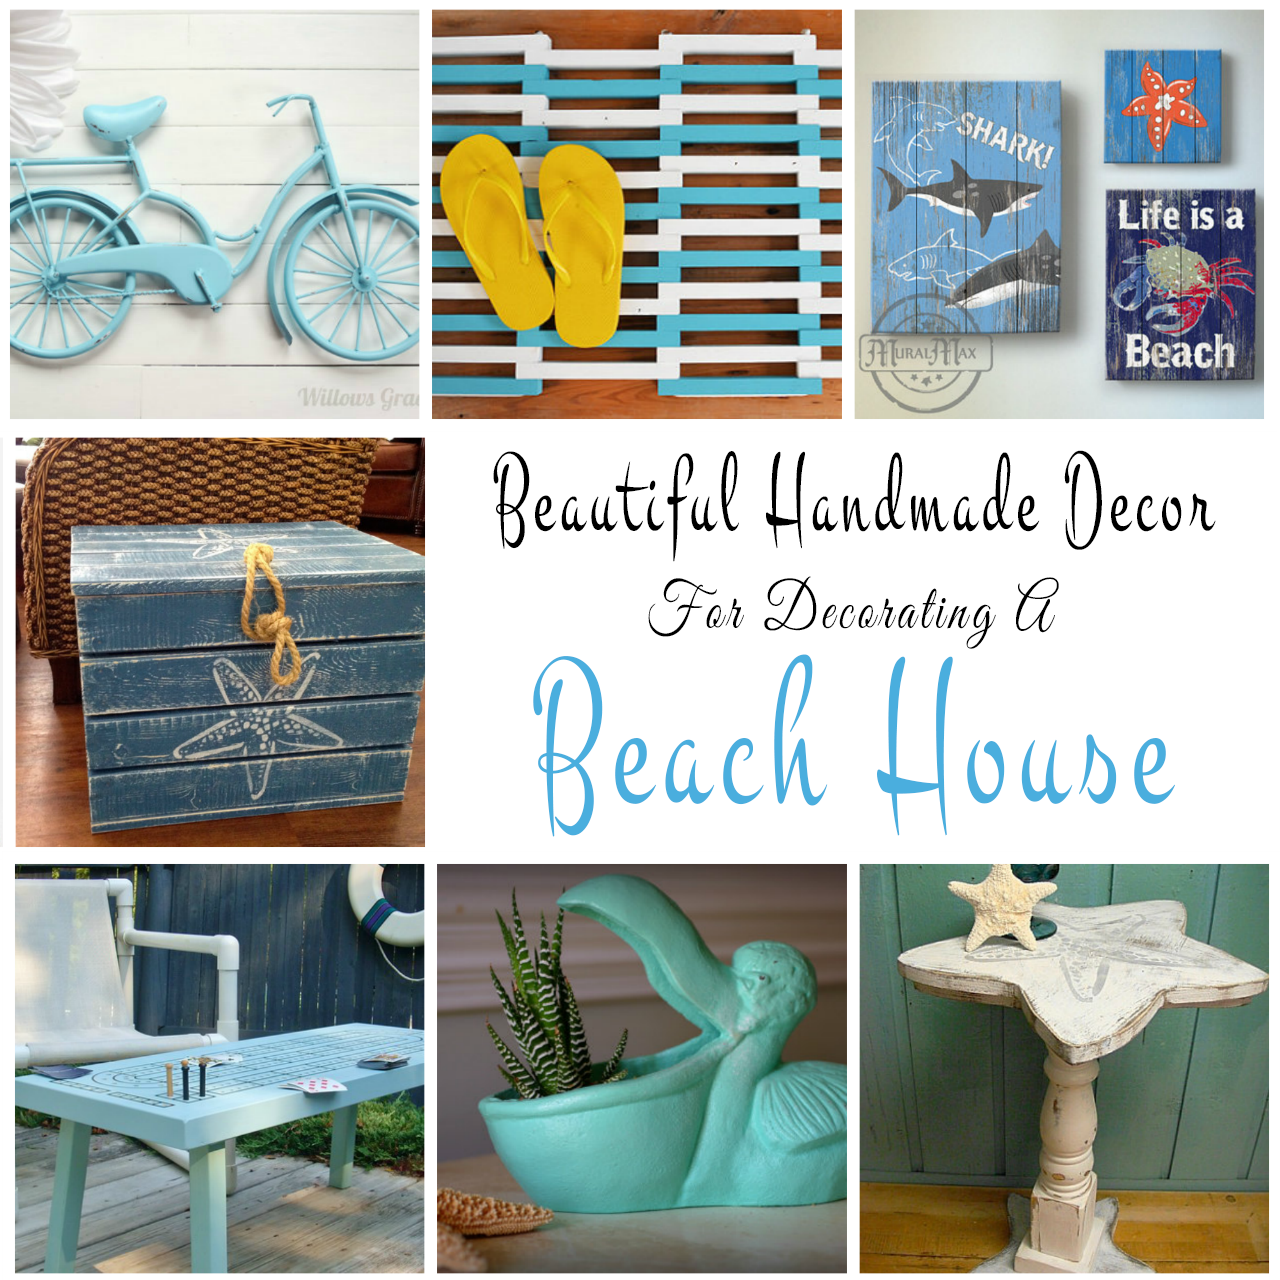 Handmade Decor Ideas For Decorating A Beach House | Glitter \'N Spice